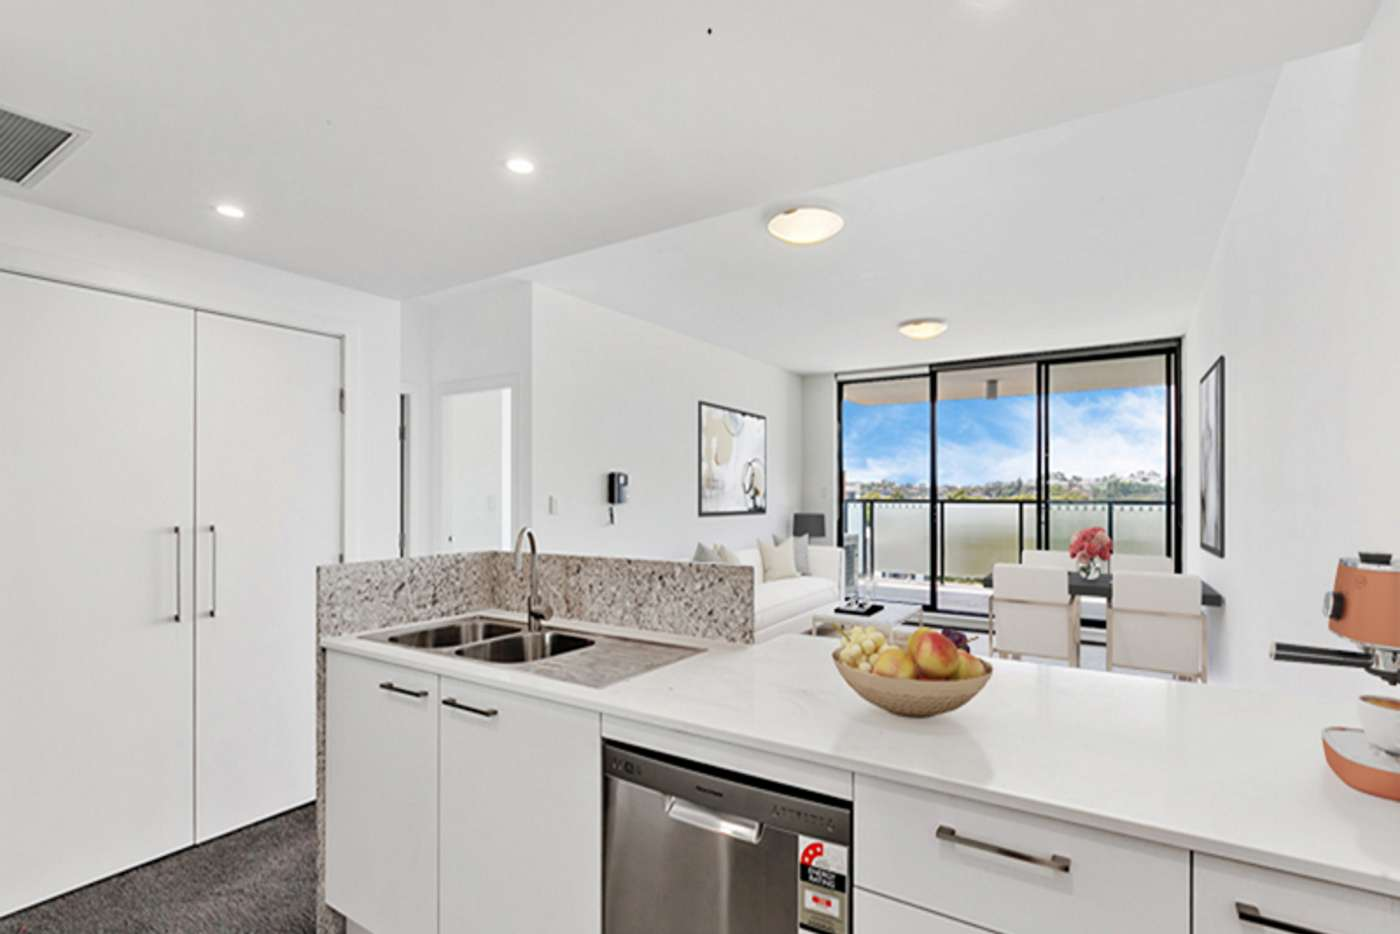 Main view of Homely apartment listing, 28/11 Bidjigal Road, Arncliffe NSW 2205